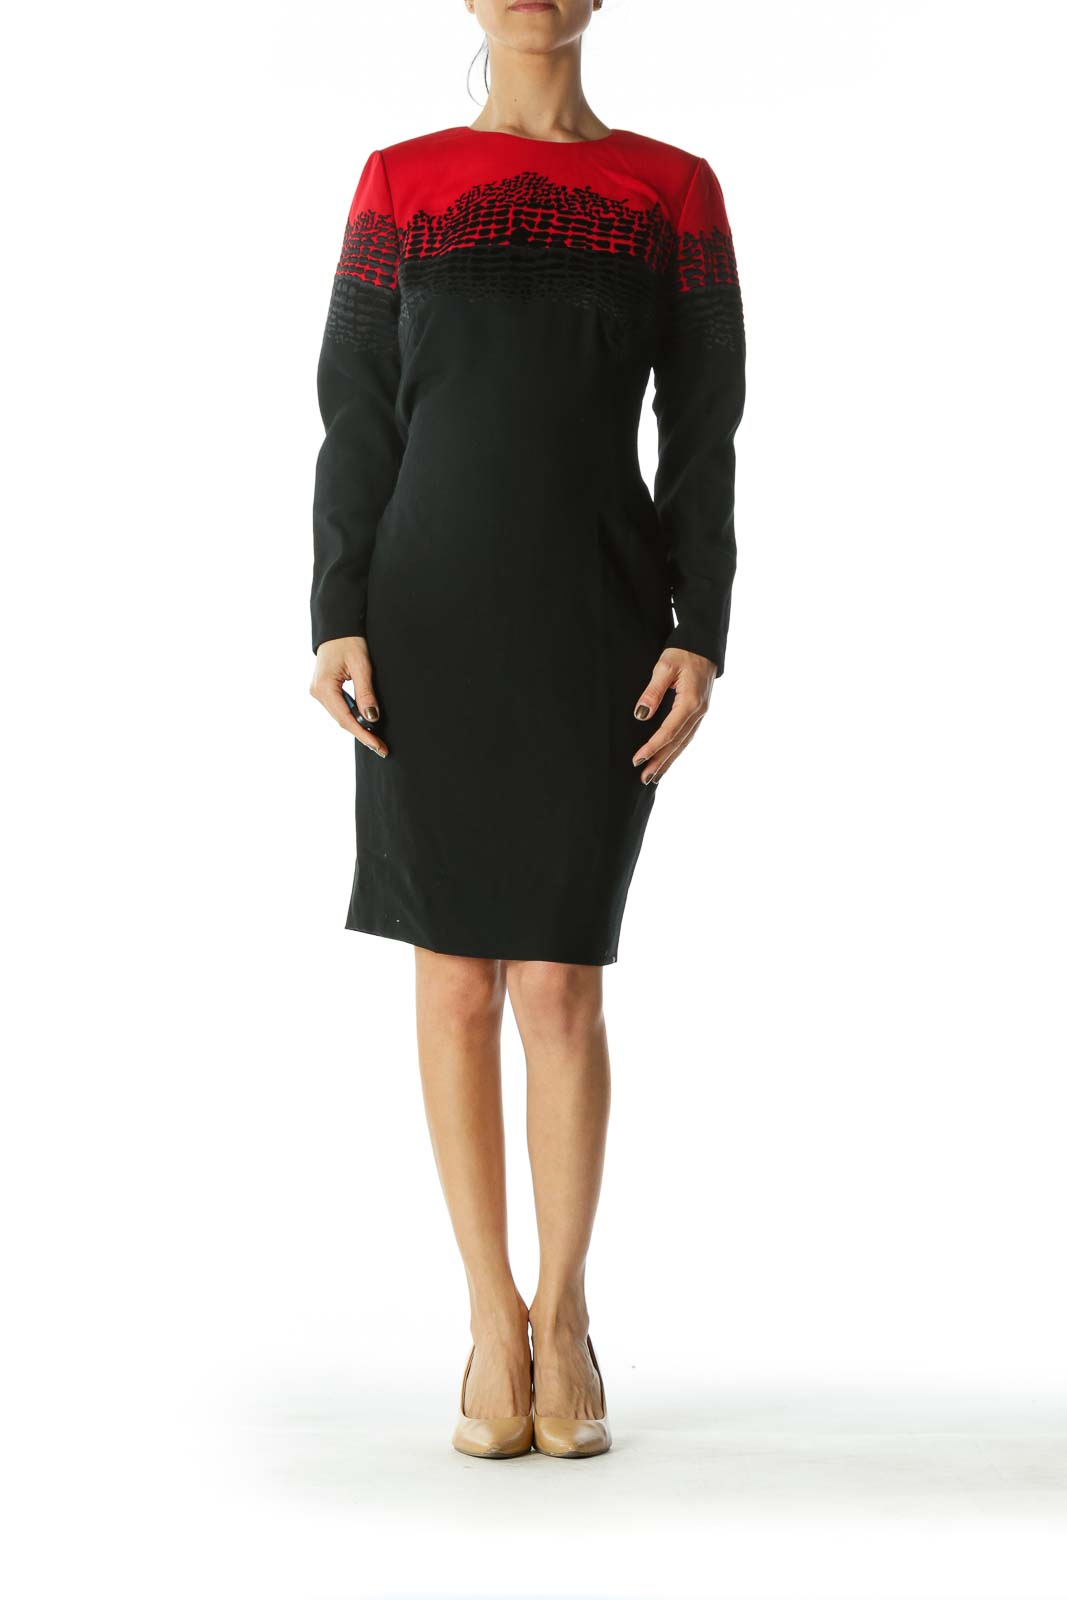 Red Black Long-Sleeve Textured Work Dress